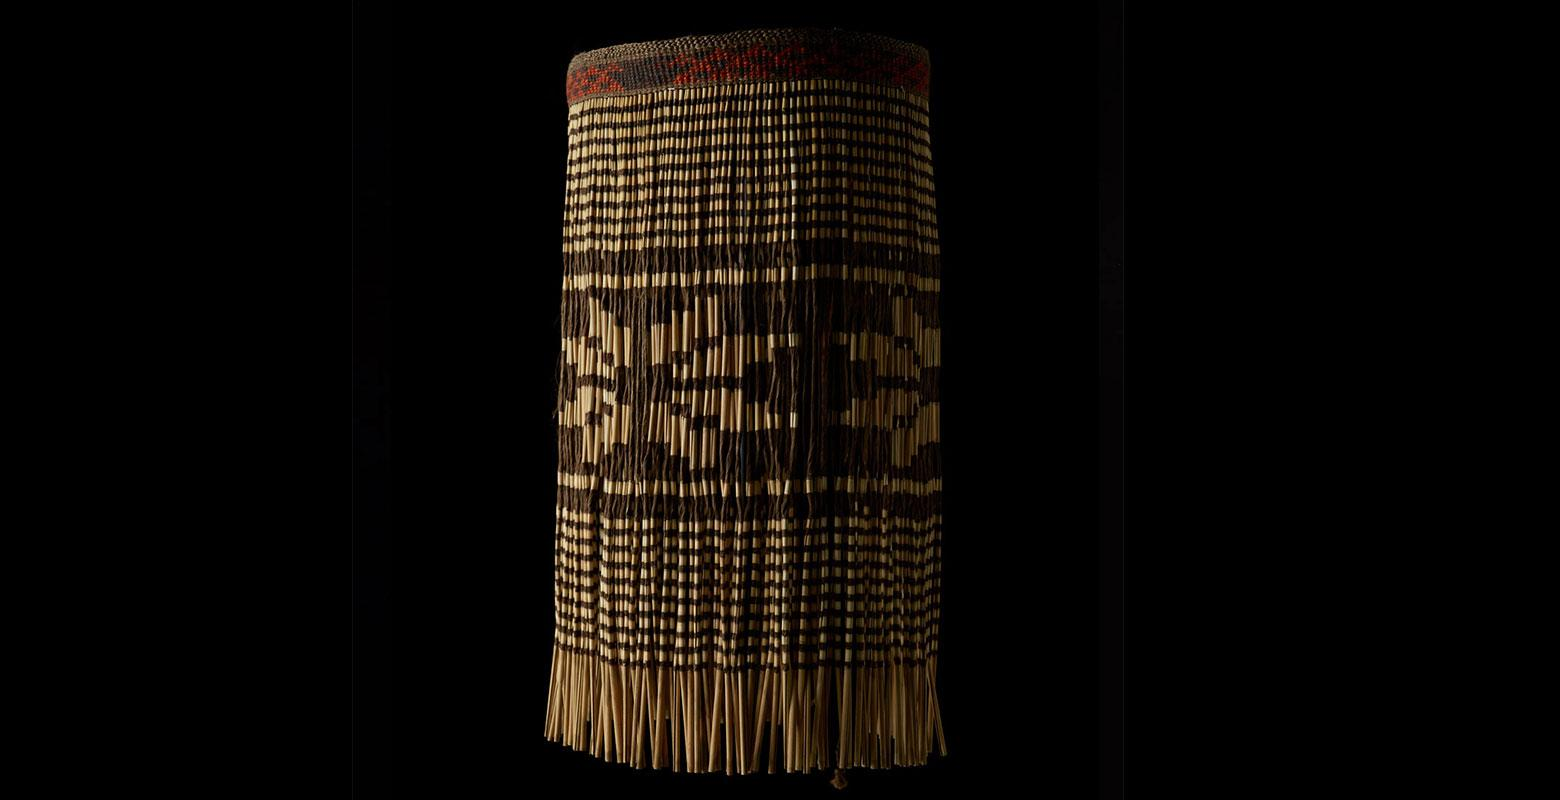 A skirt-like garment made of flax strands